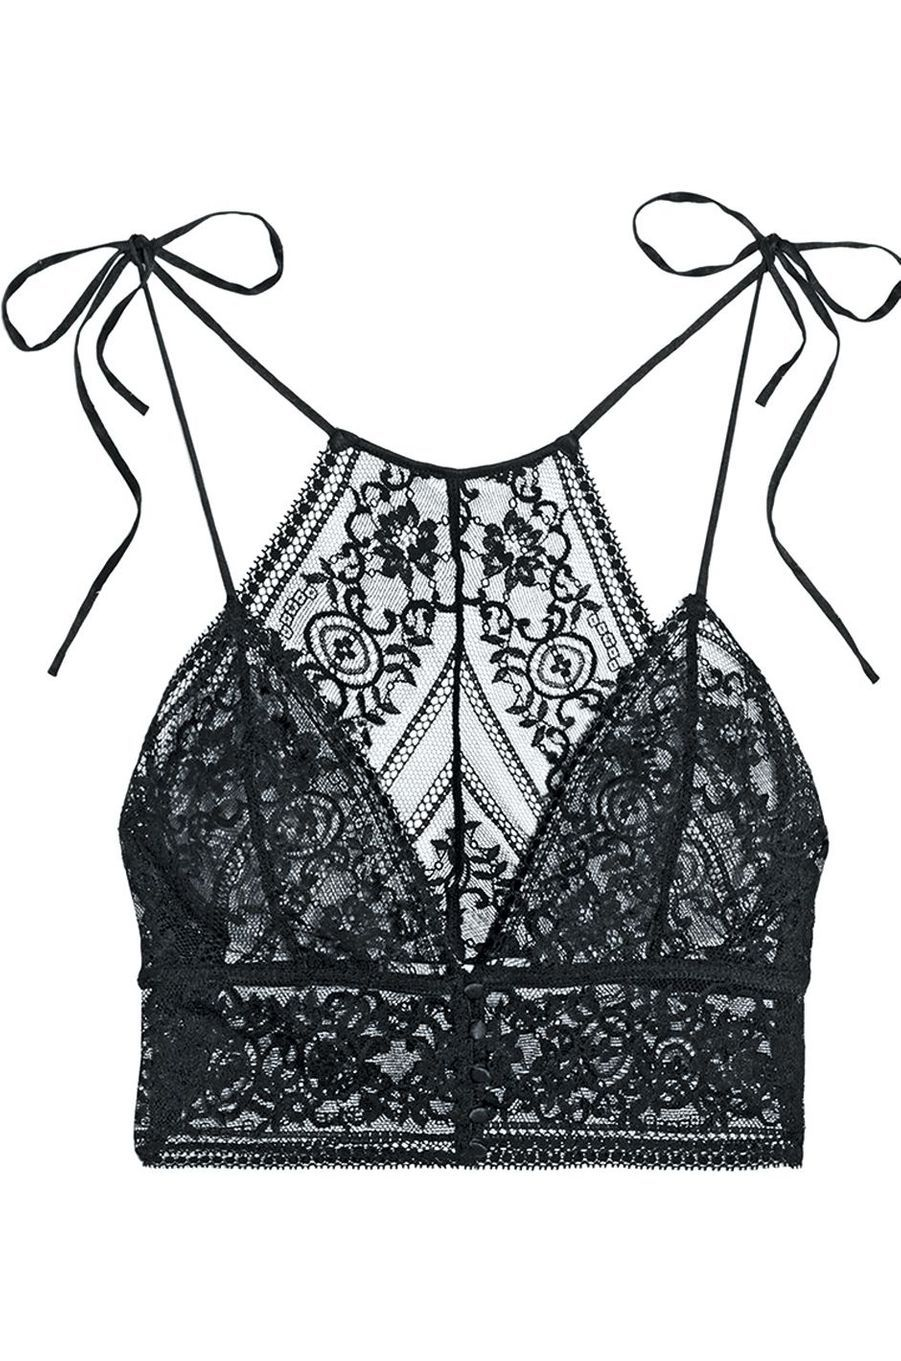 Soutien-gorge en dentelle Leavers Stretch et en satin Ophelia Whistling, Stella McCartney sur Net-a-porter, 180 €.